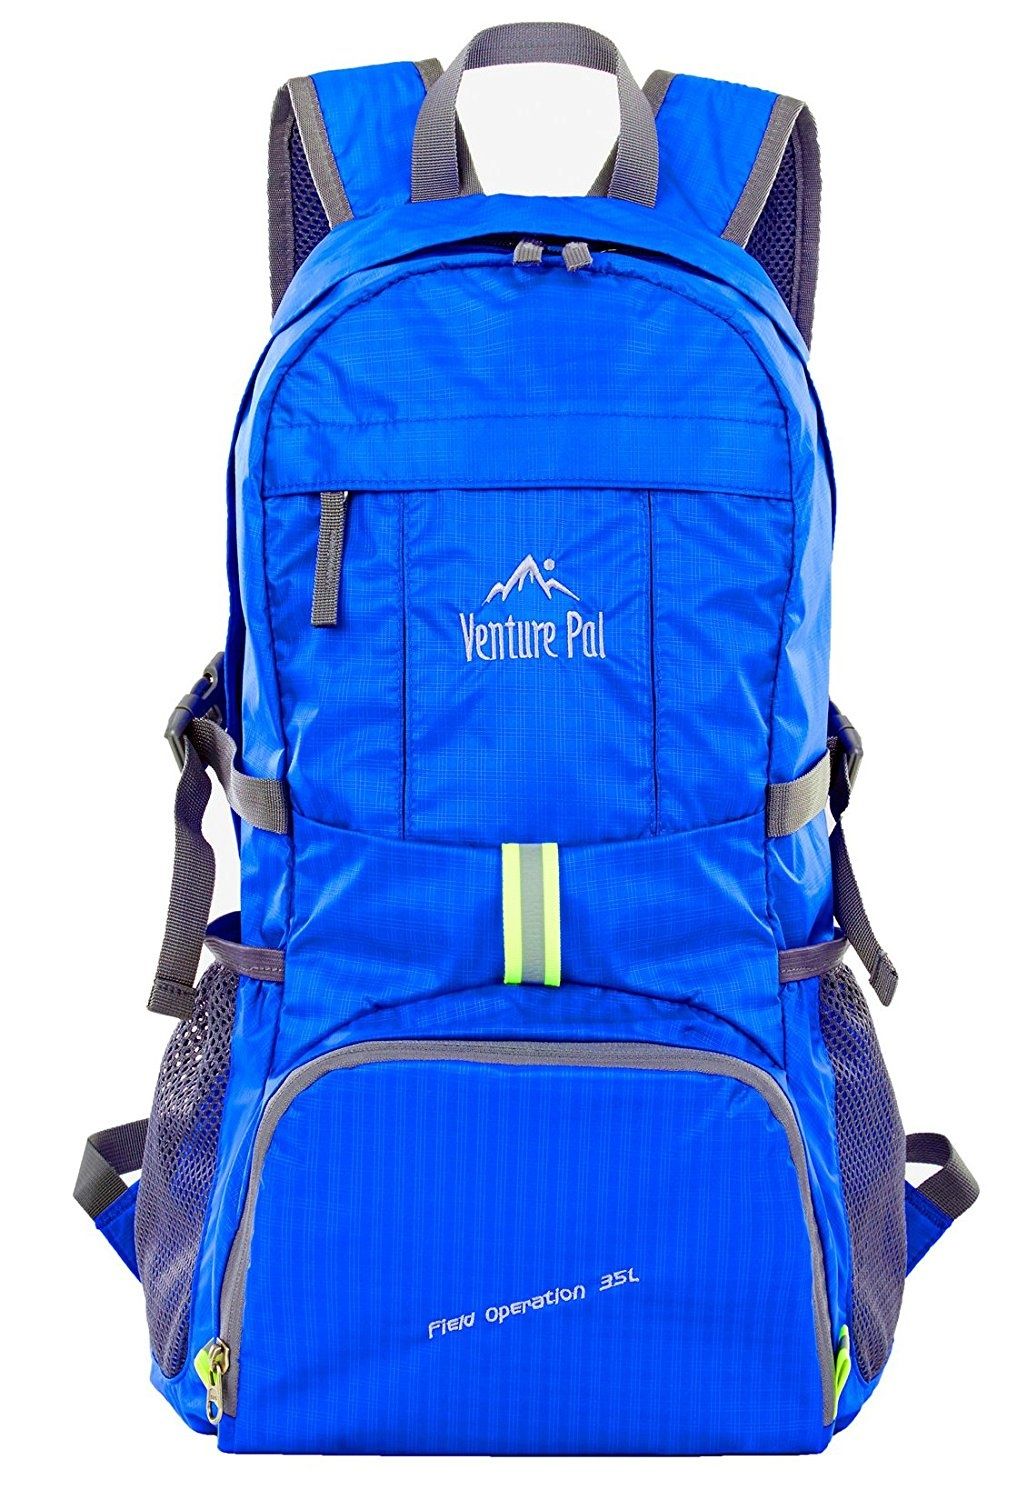 Venture Pal Lightweight Packable Durable Travel Hiking Backpack Daypack by Venture  Pal - Shop Online for Sports   Outdoors in New Zealand ba946f73bed23